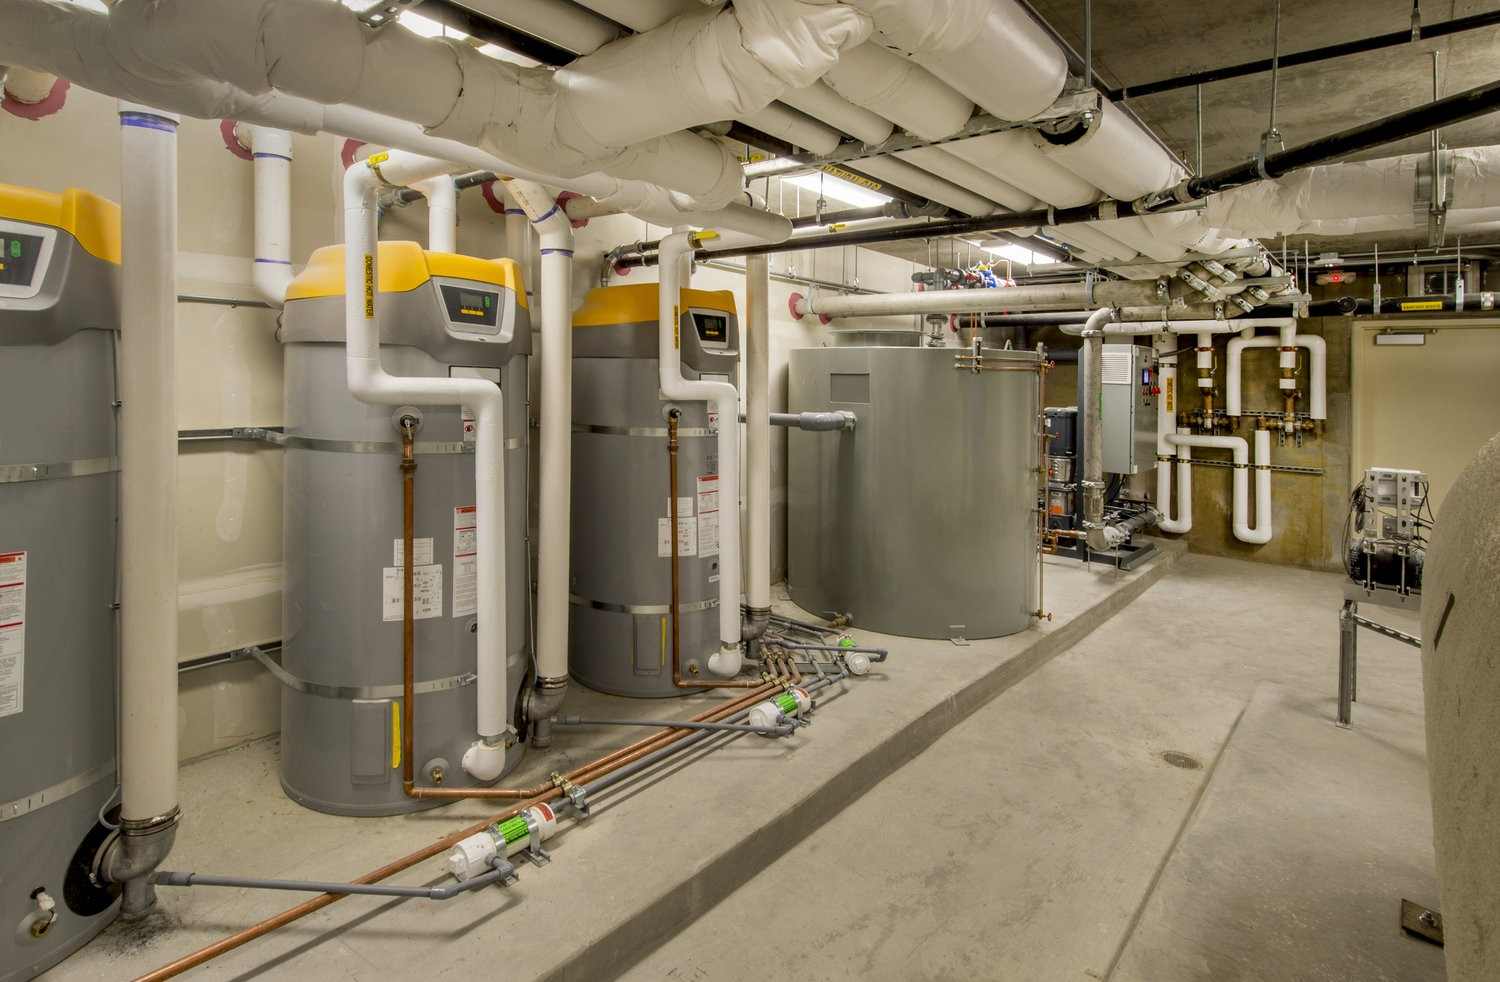 Commercial-Water-Heater-Services-Palm-Beach-Water-Heater-Installers-We do Water Heater Installation and Repair, Natural Gas Water Heaters, 24/7 Emergency Water Heater Service and Maintenance, Hybrid Water Heaters, Water Heater Expansion Tank, Commercial Water Heater Services, Tankless Water Heaters Installations, and more